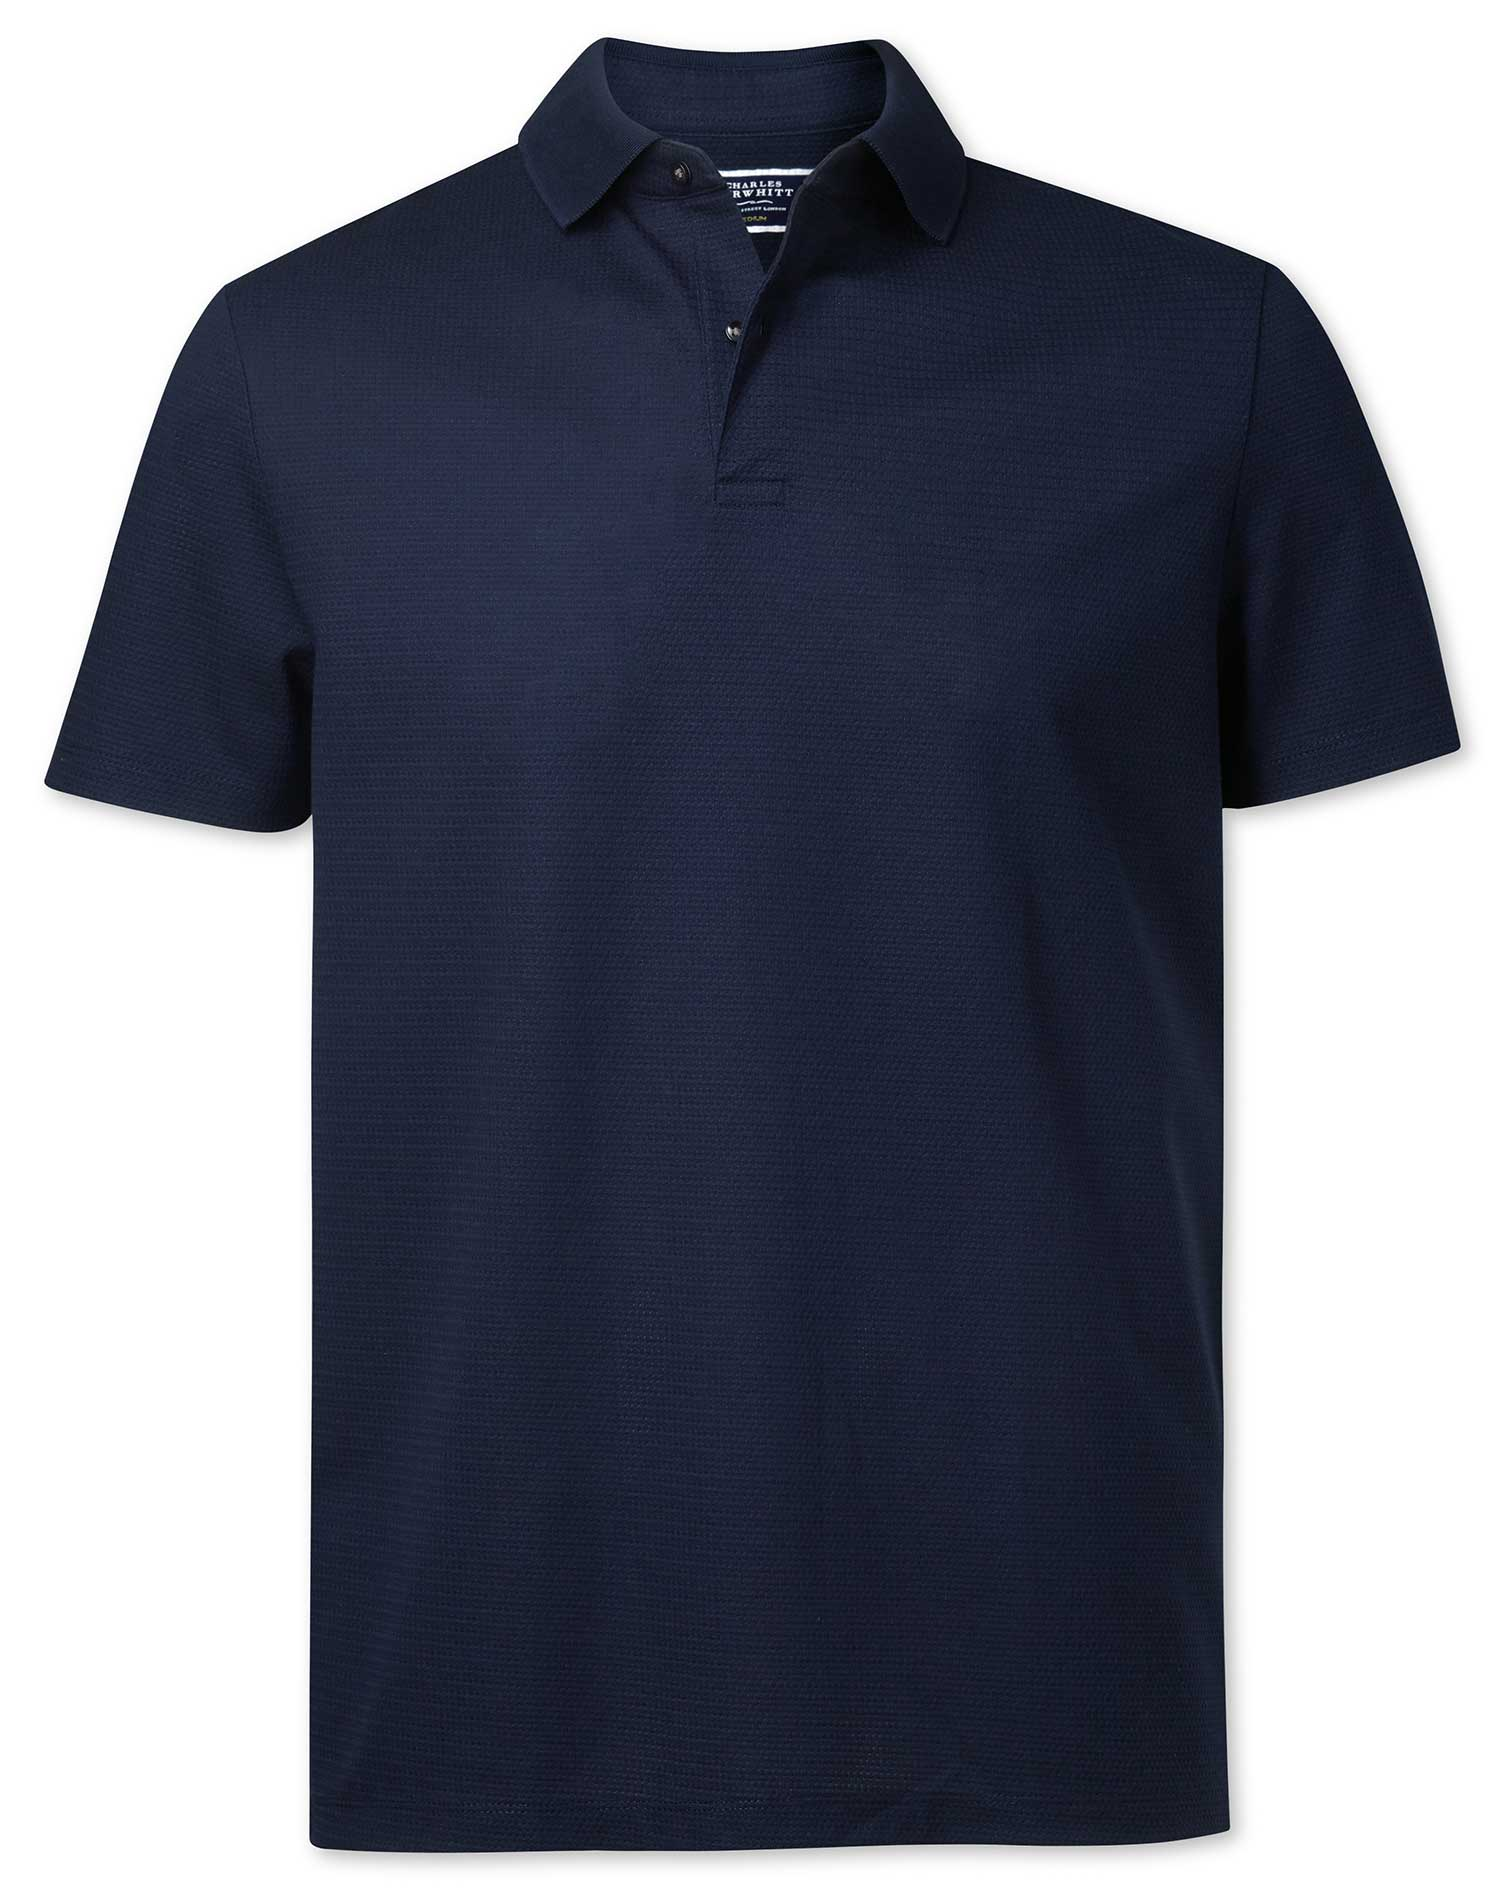 Navy Aircool Cotton Polo Size XS by Charles Tyrwhitt